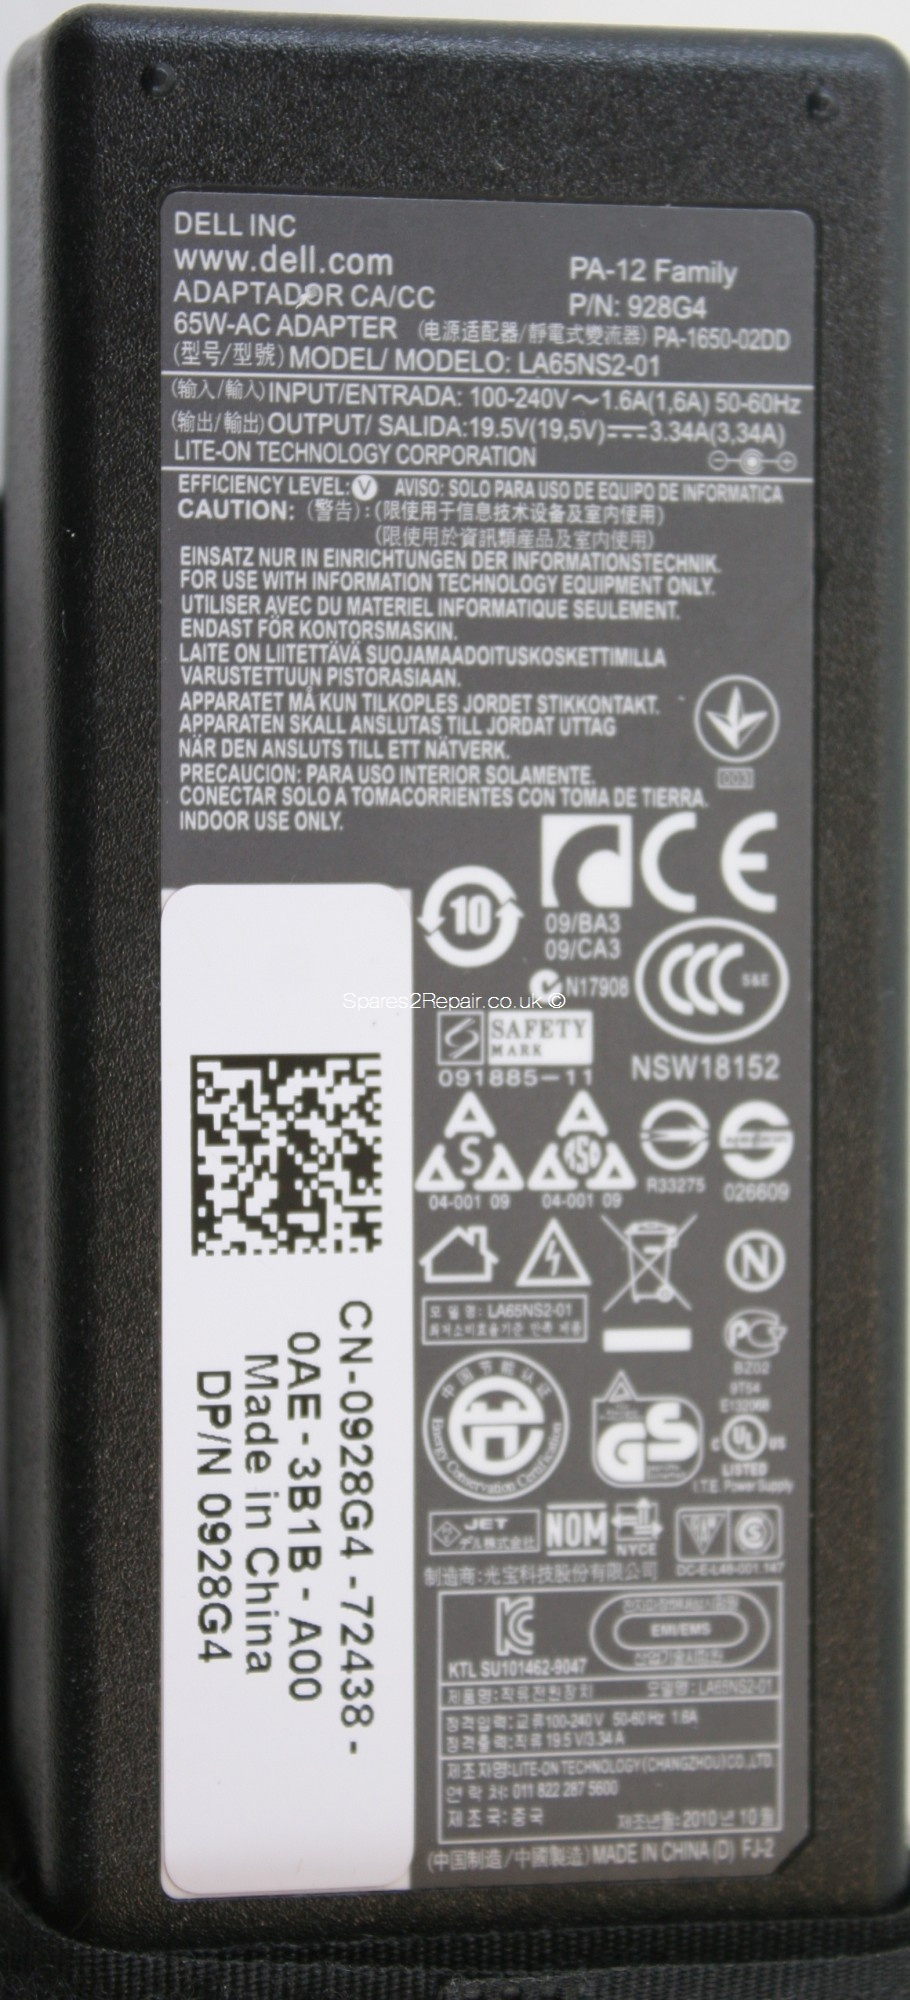 Dell - Charger - 928G4 - PA-1650-02DD - 19.5V 3.34A (Original)